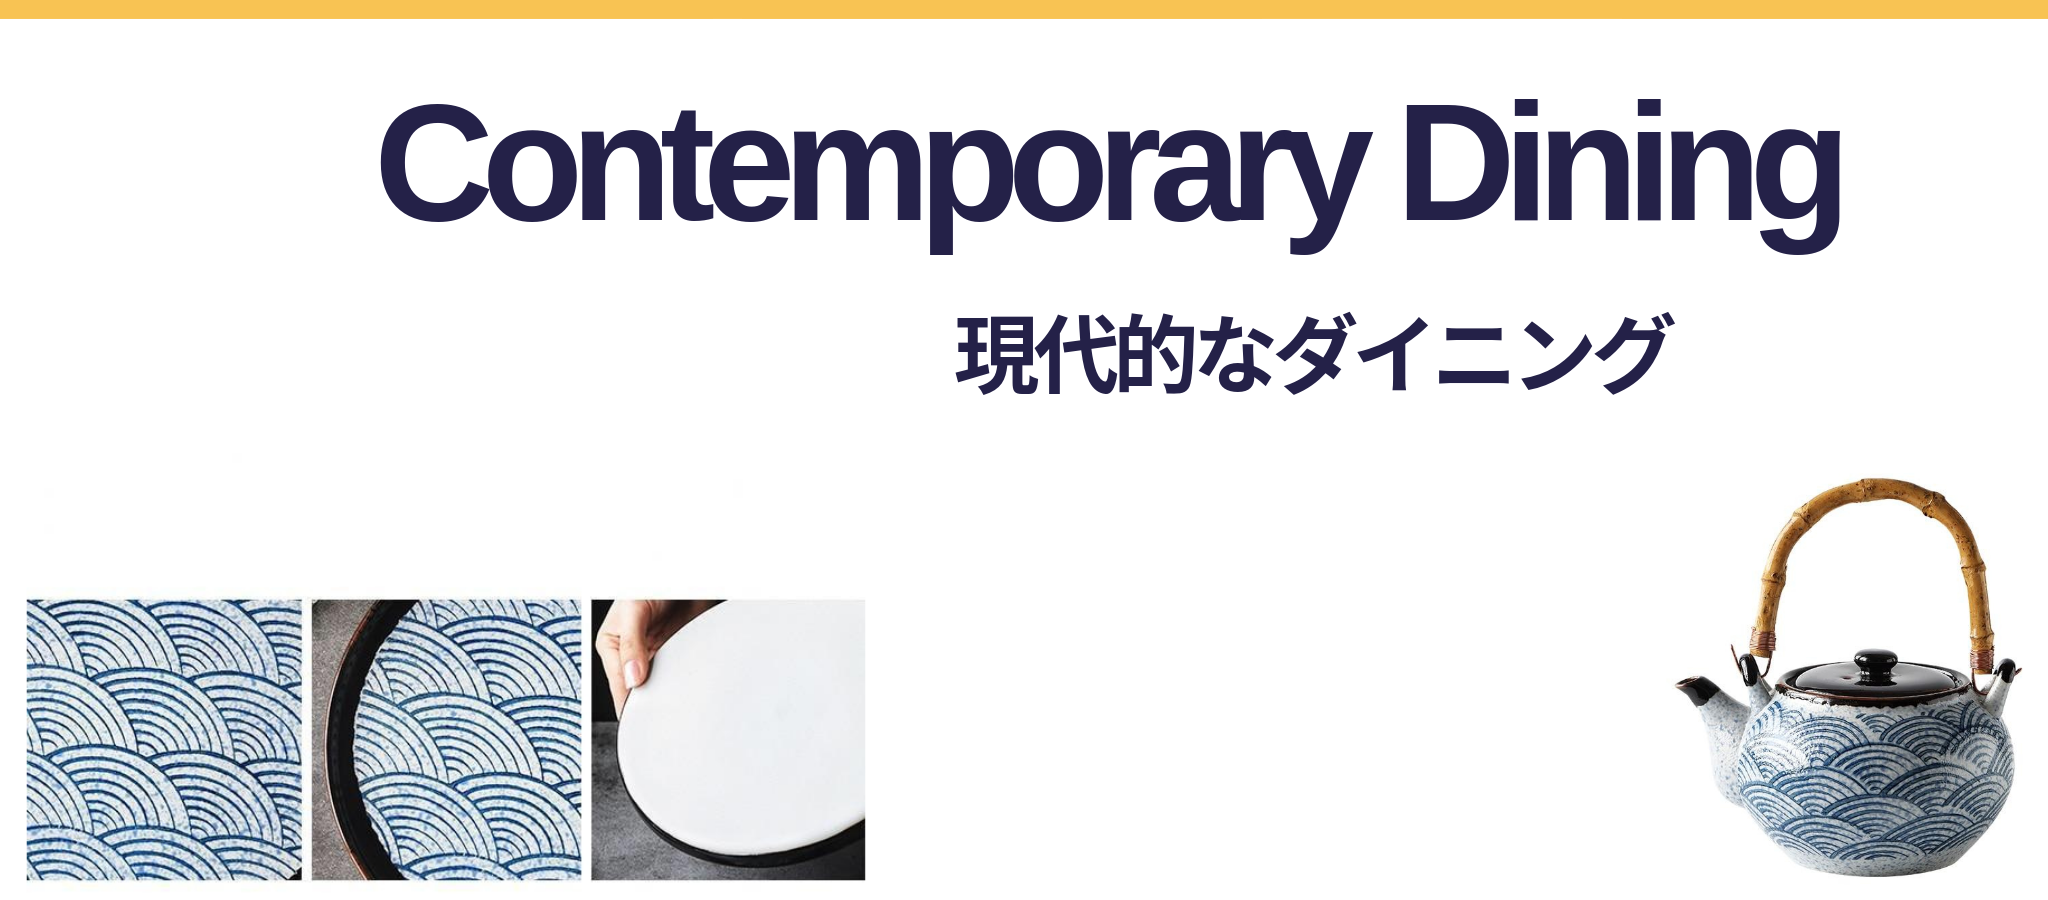 miTeigi | Contemporary Dining Japanese Dinnerware Sets